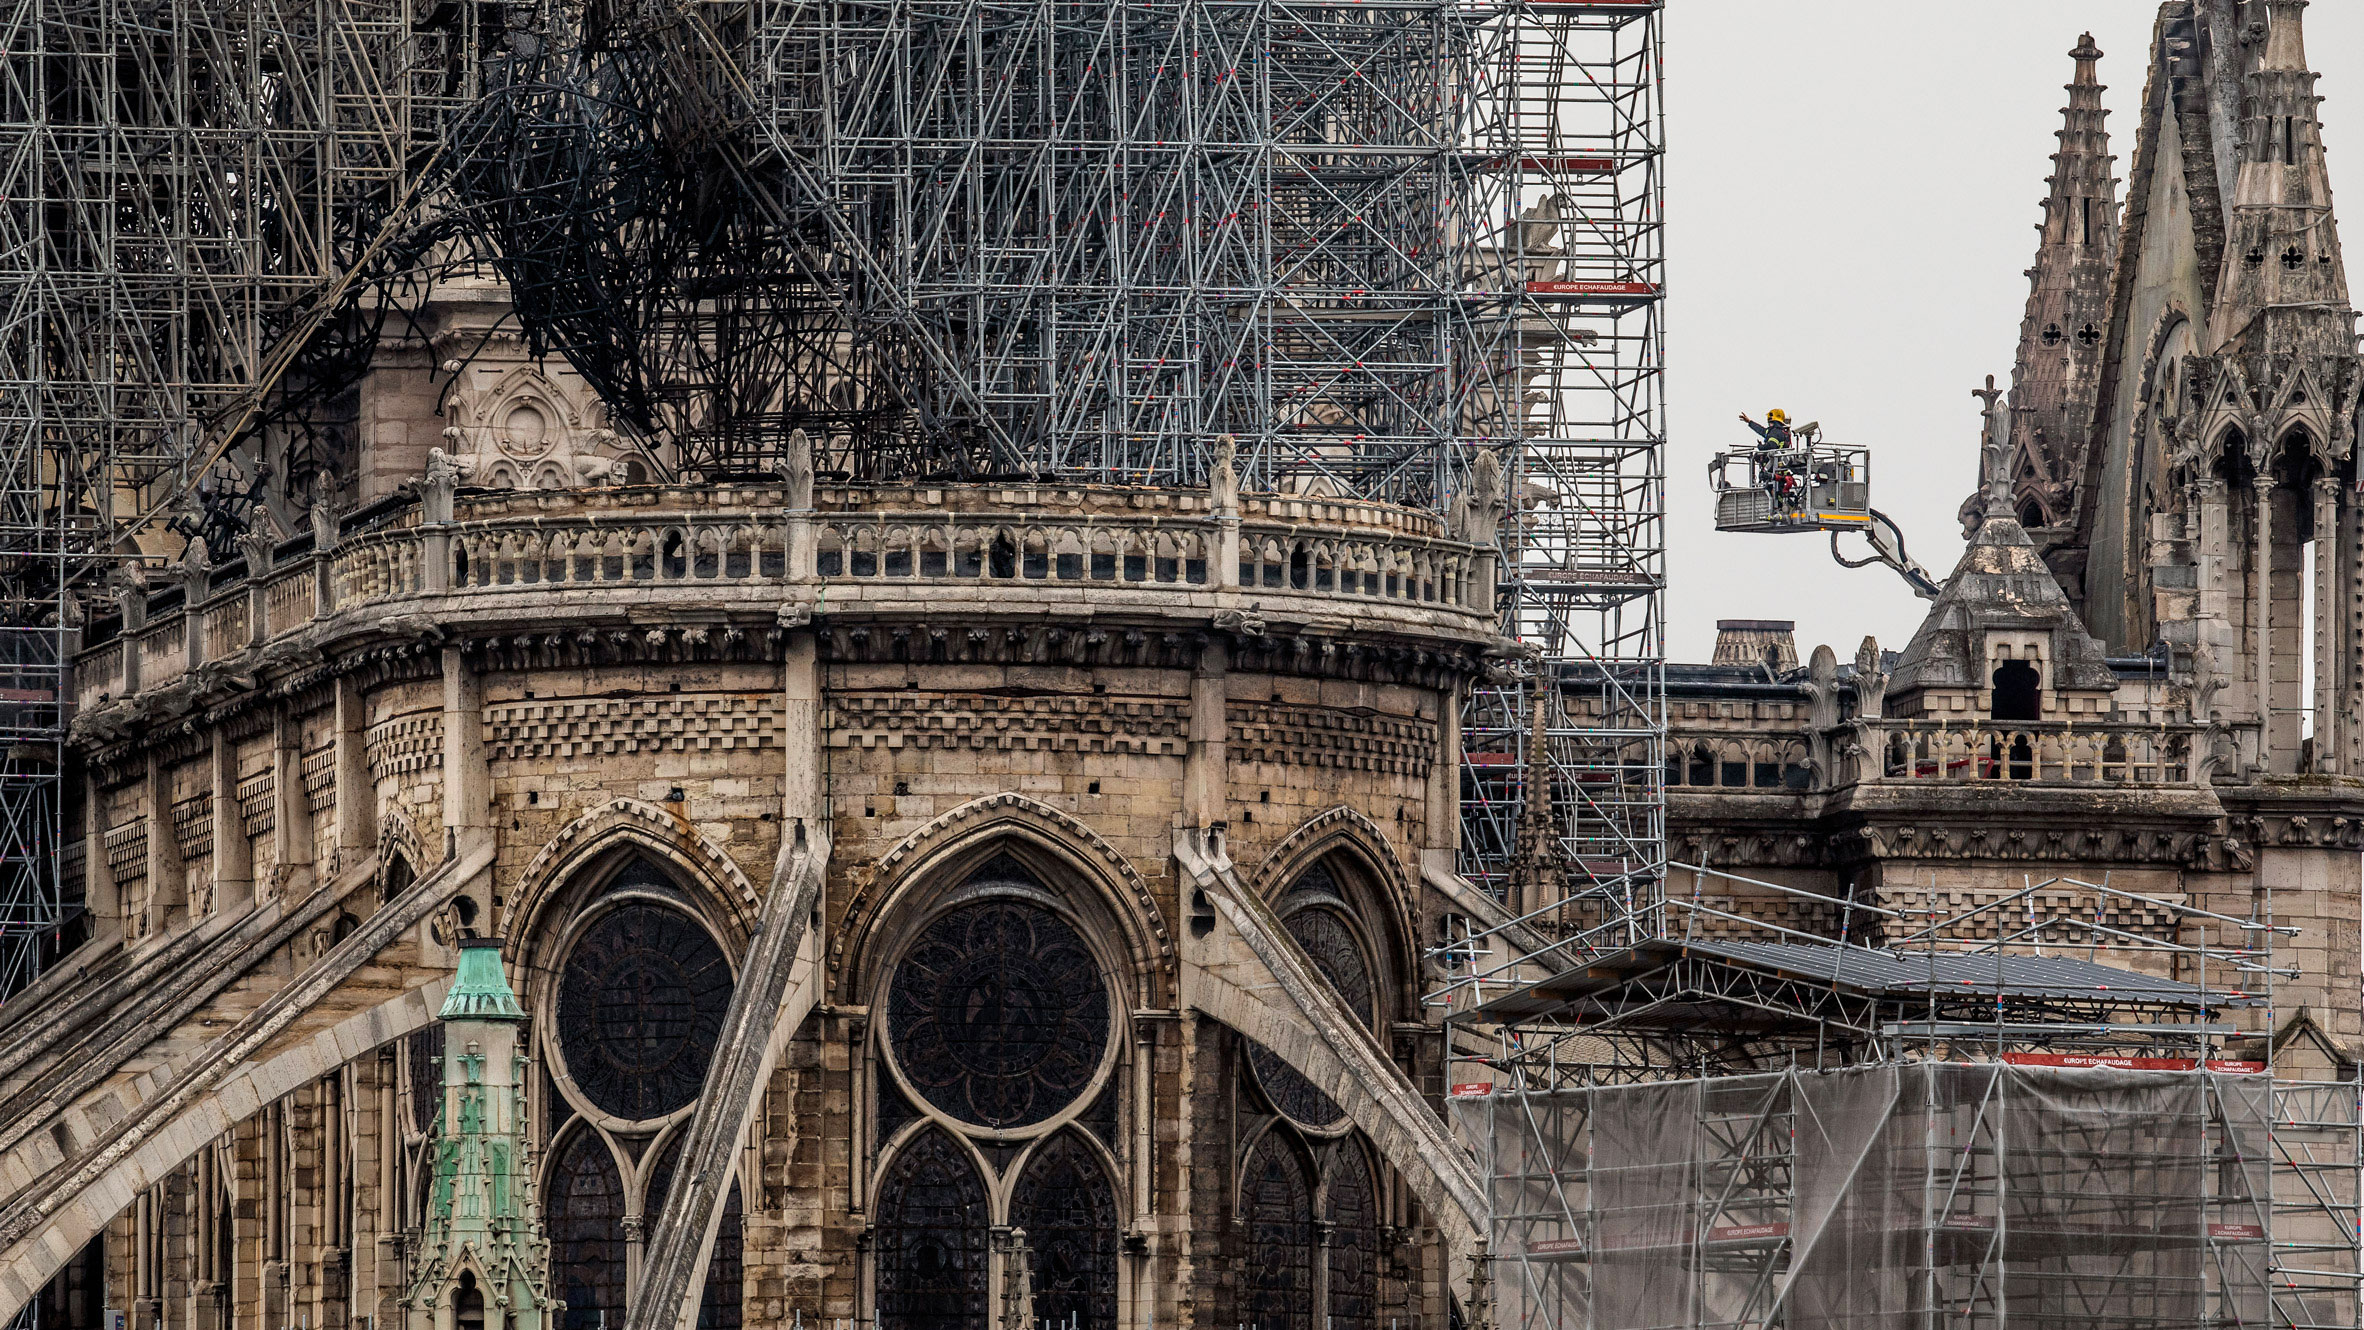 After Notre-Dame suffered a serious fire last month, President Macron made a televised address promising to restore the cathedral in just five years.